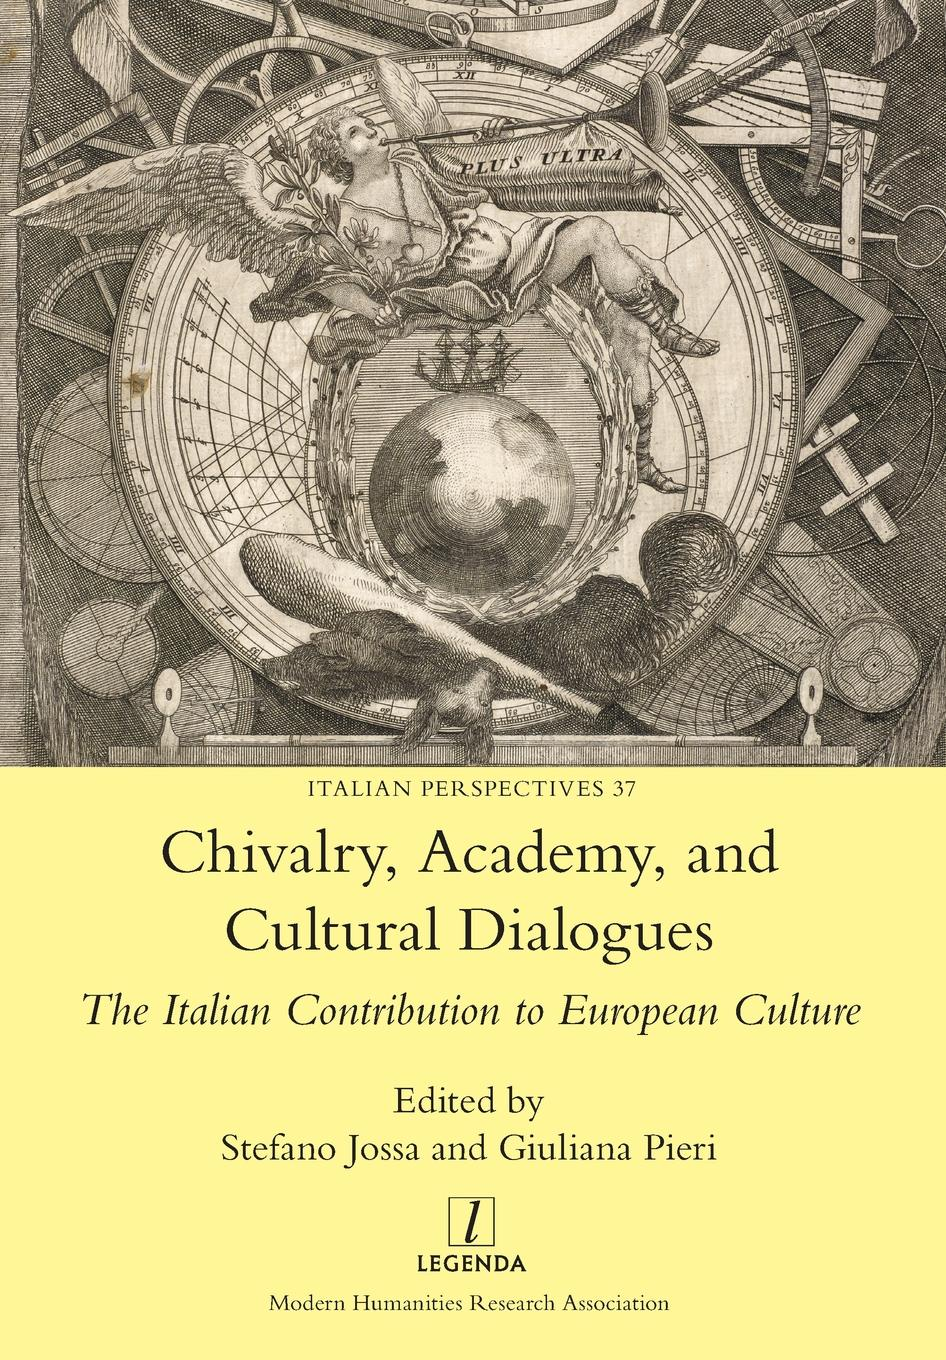 Chivalry, Academy, and Cultural Dialogues. The Italian Contribution to European Culture neville morley antiquity and modernity